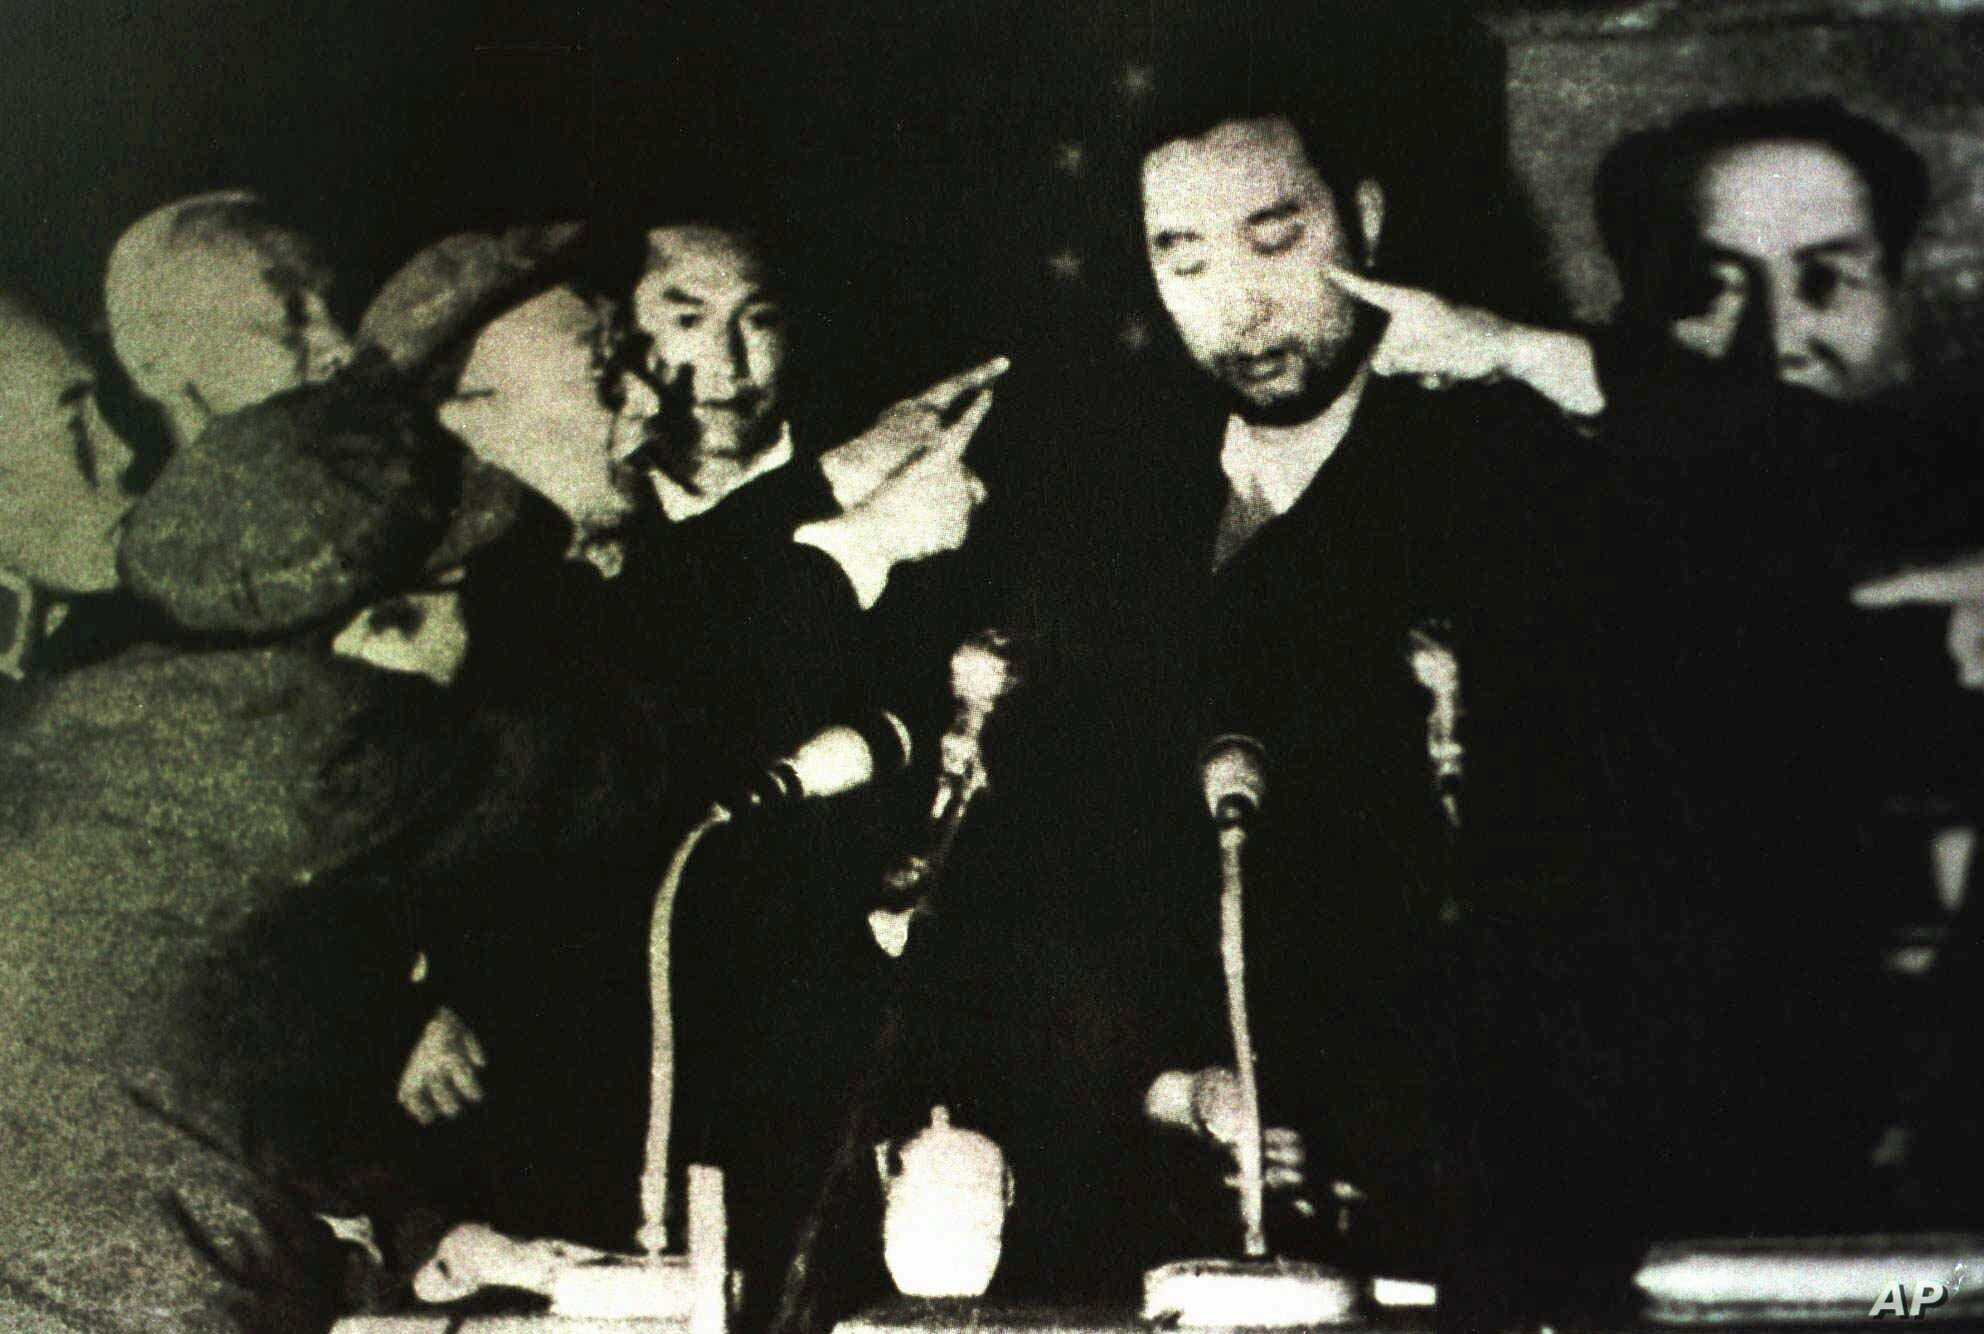 Tibet's 10th Panchen Lama is seen undergoing a Cultural Revolution struggle session in Tibet's capital Lhasa, in this 1964 photo.